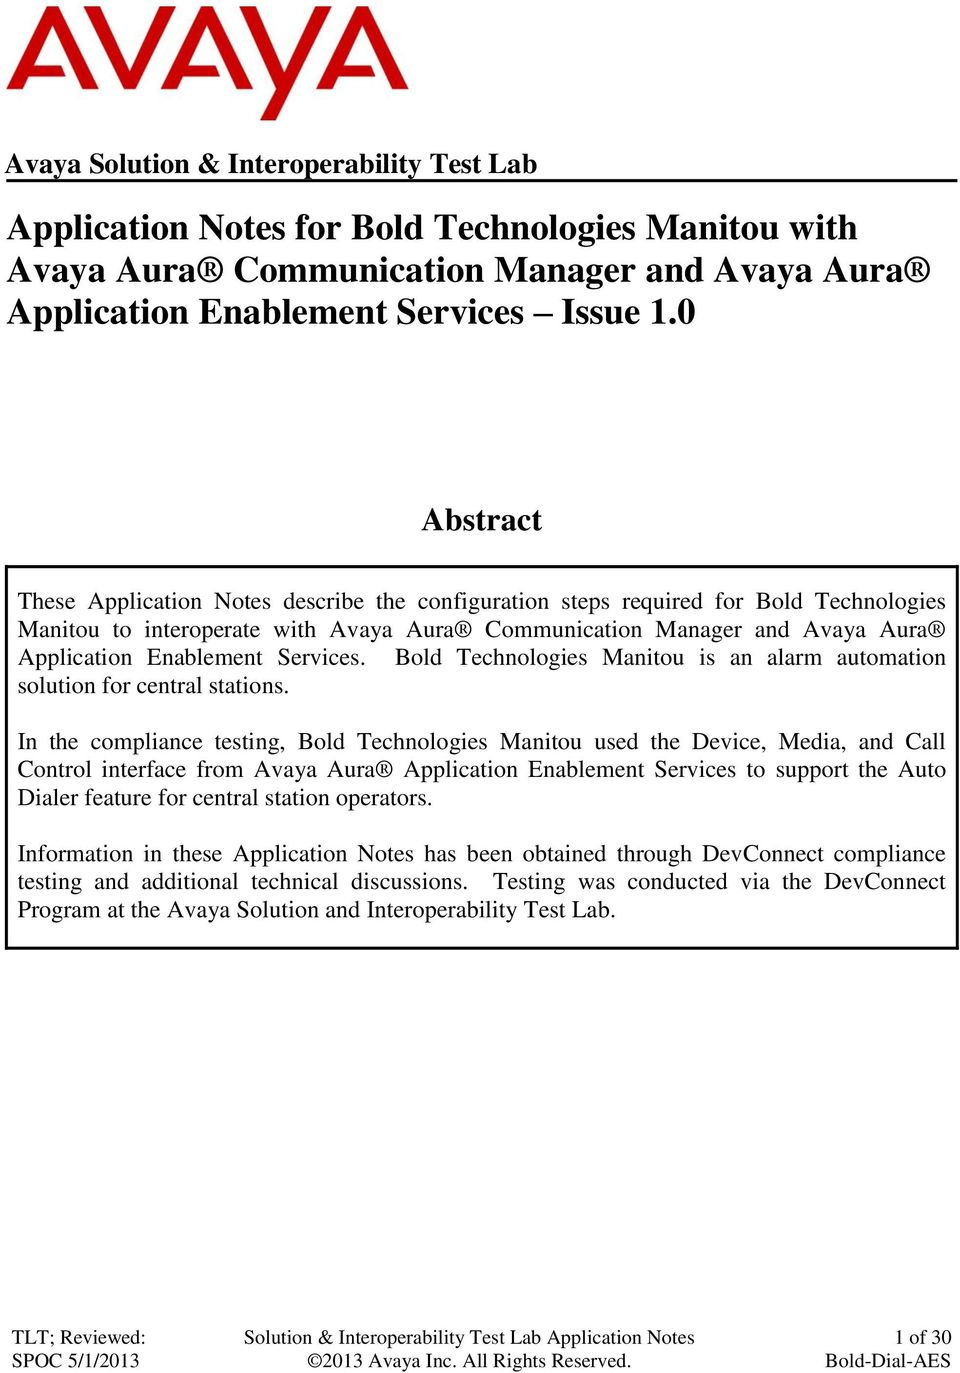 Application Notes for Bold Technologies Manitou with Avaya Aura